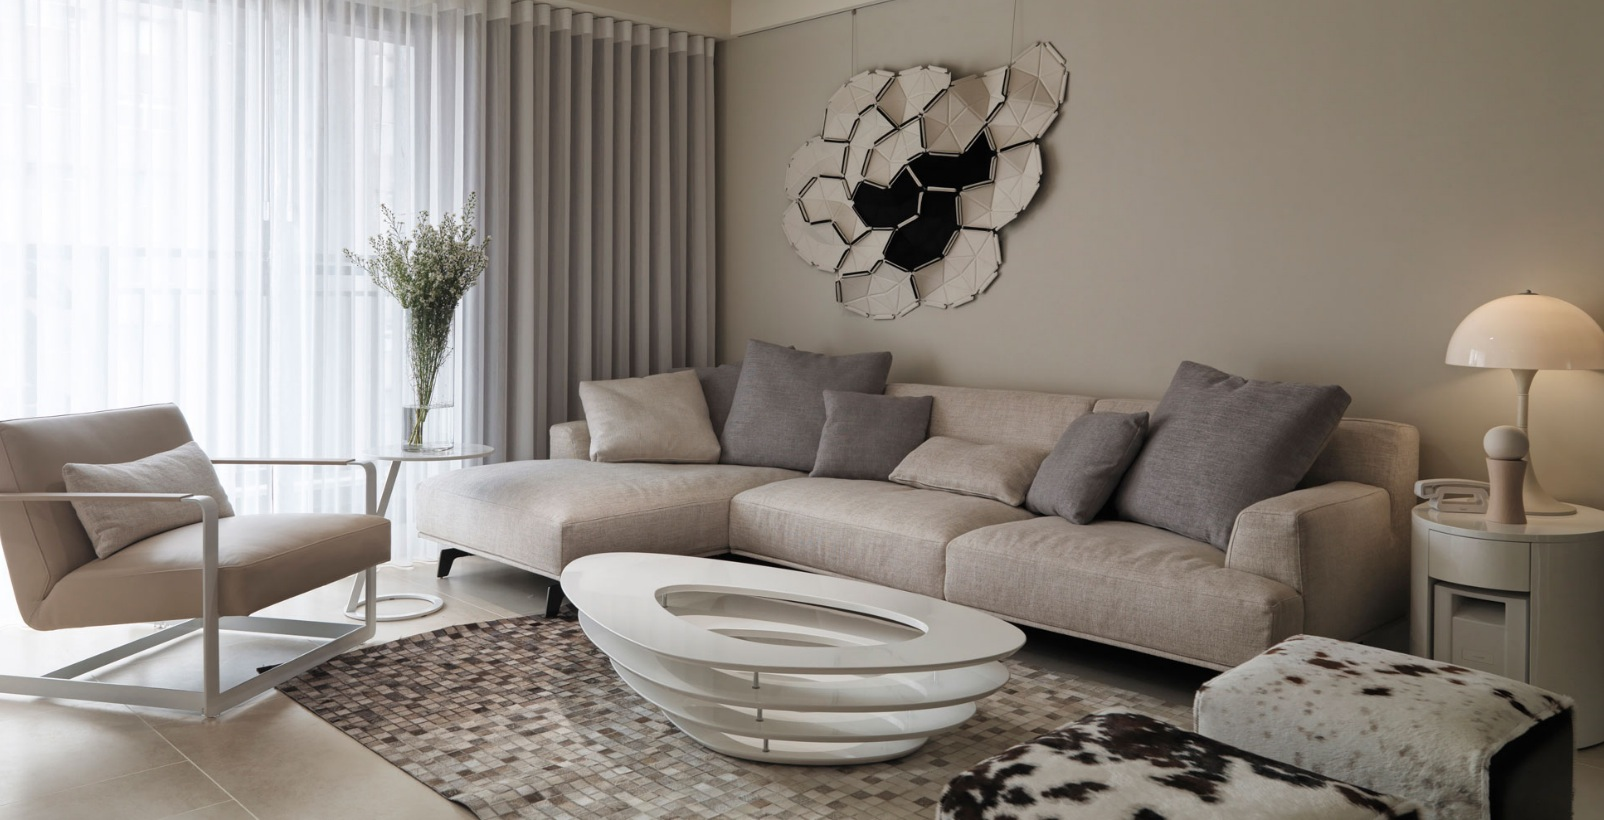 Neutral contemporary apartment by w c h design studio for Neutral tone living room ideas